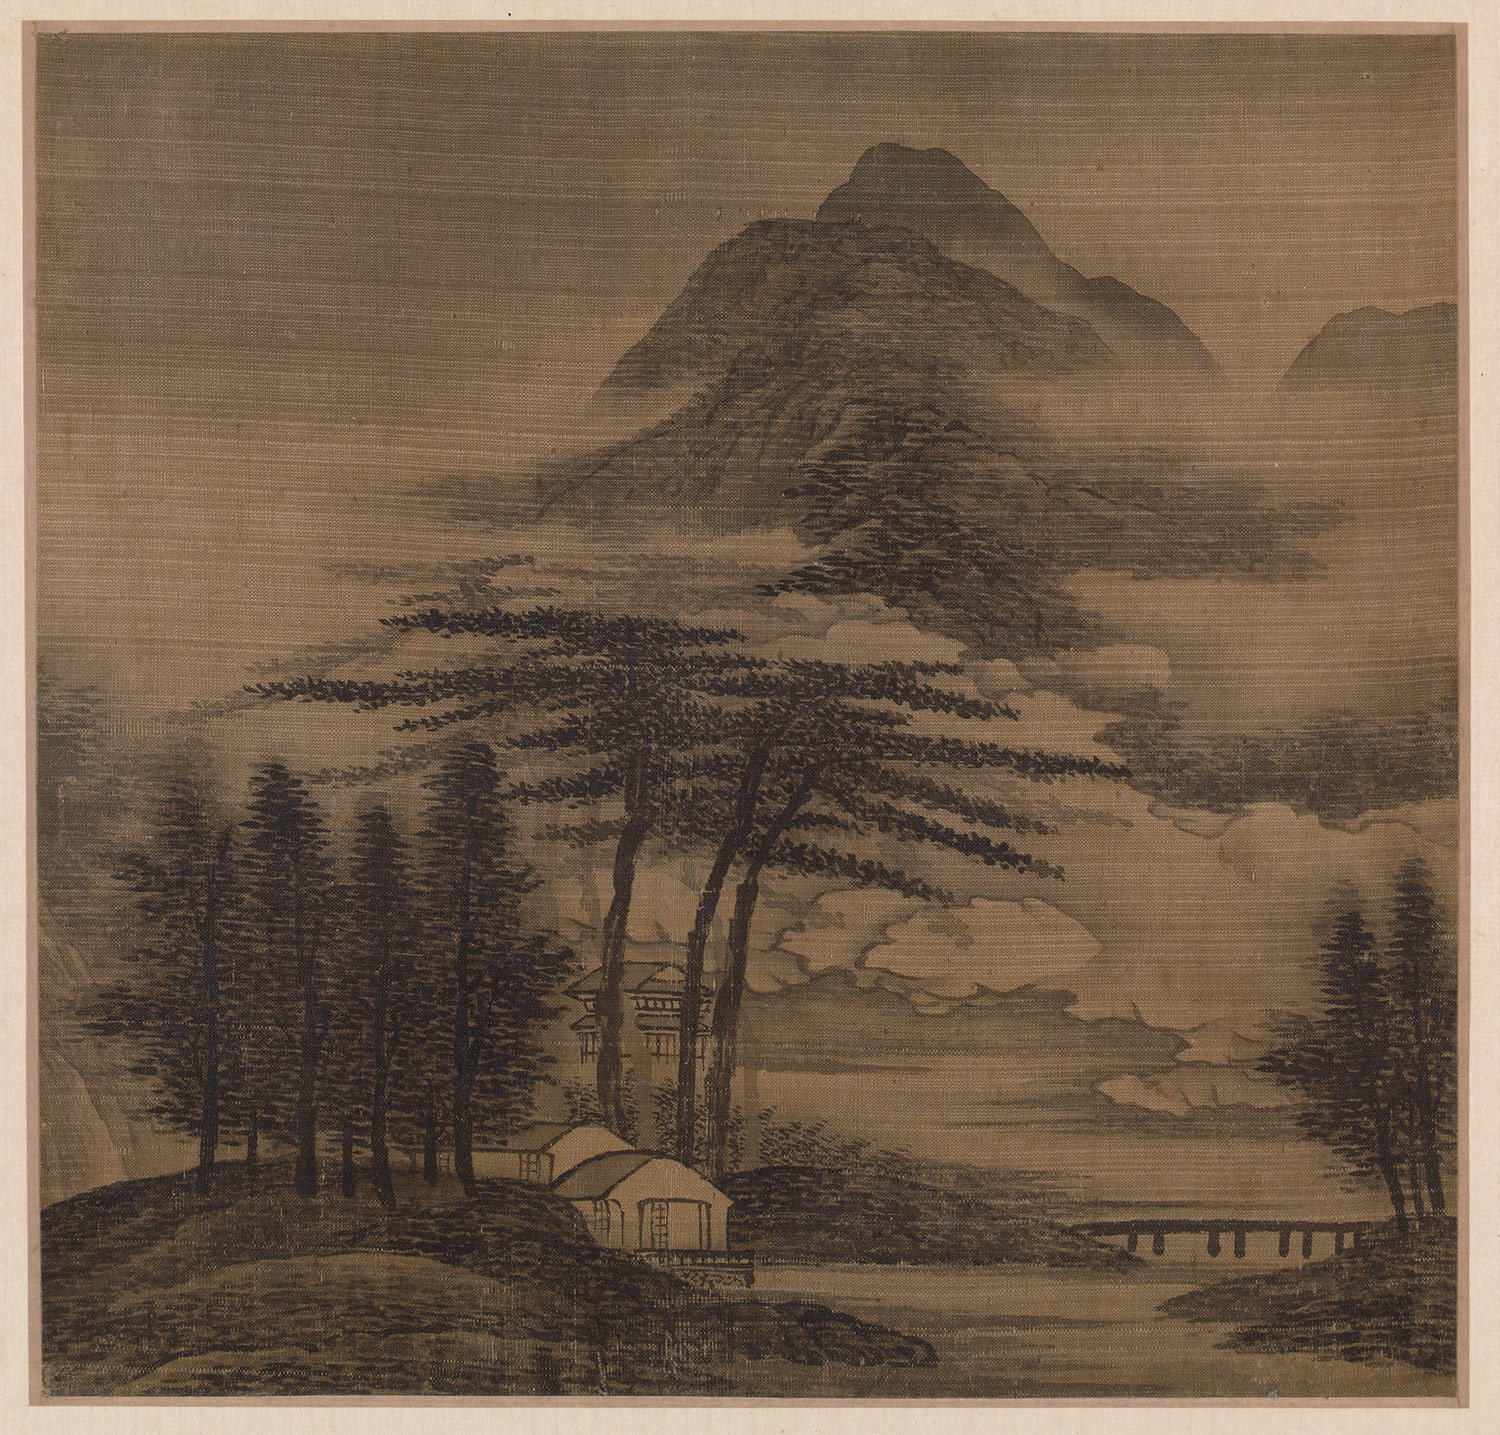 Qing dynasty painters for Dynasty mural works